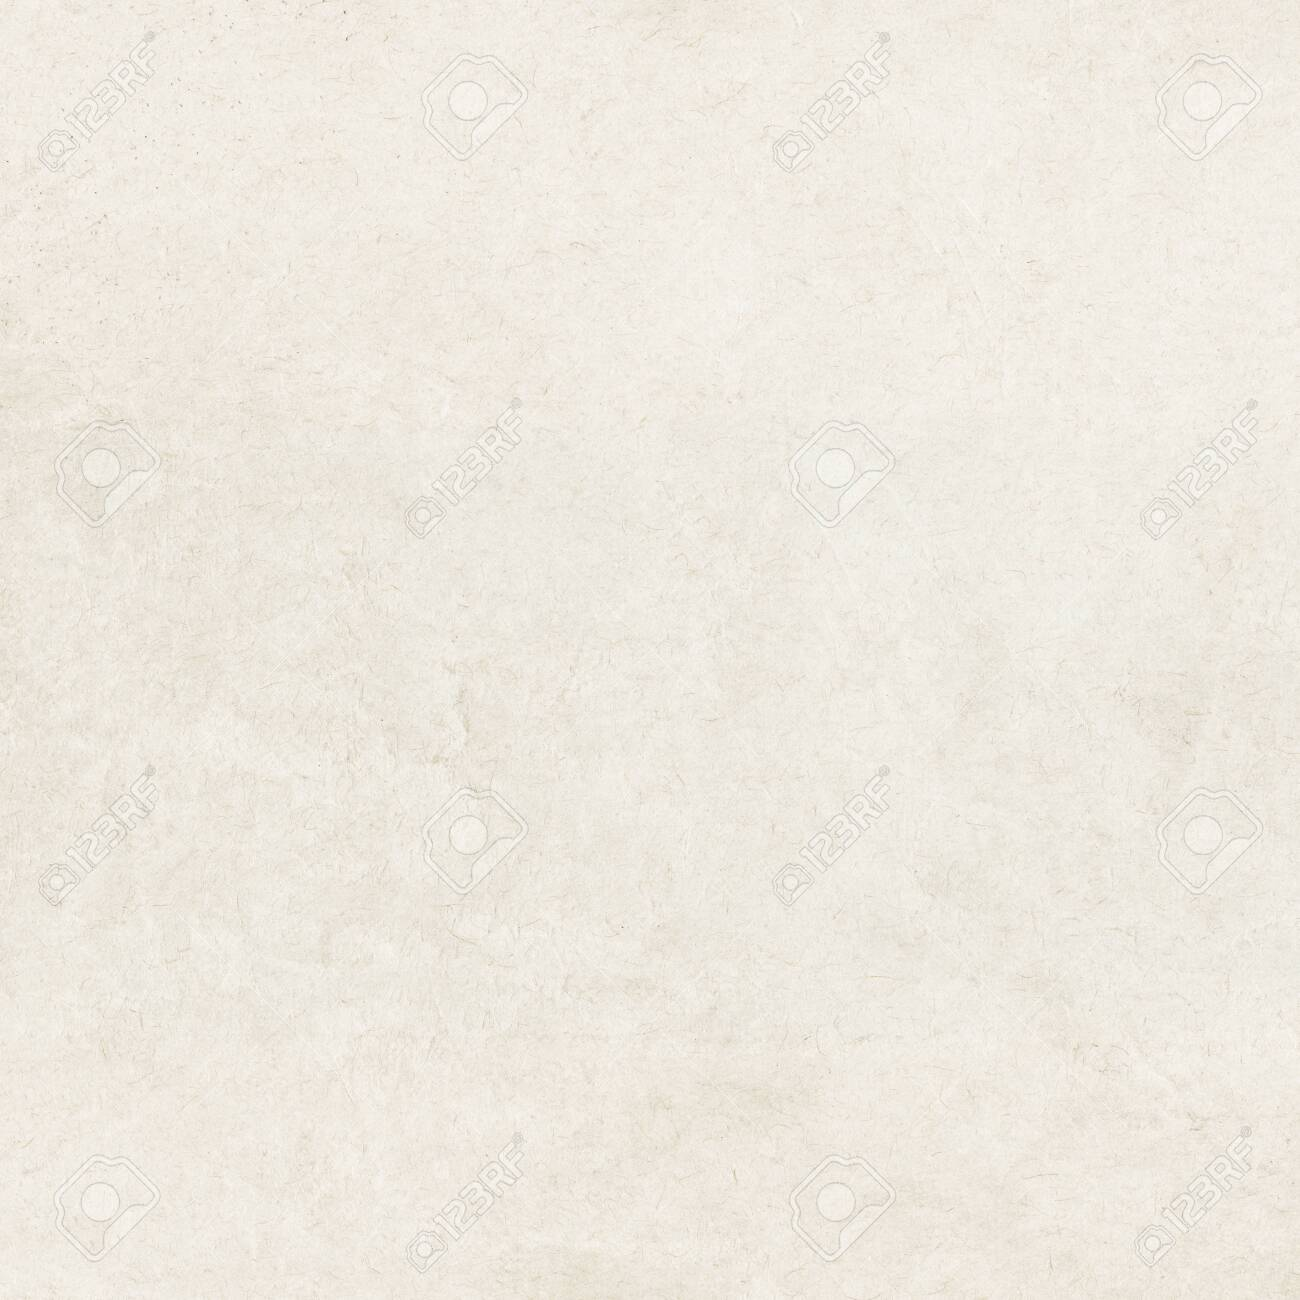 Recycle paper texture background - High resolution - 154216098